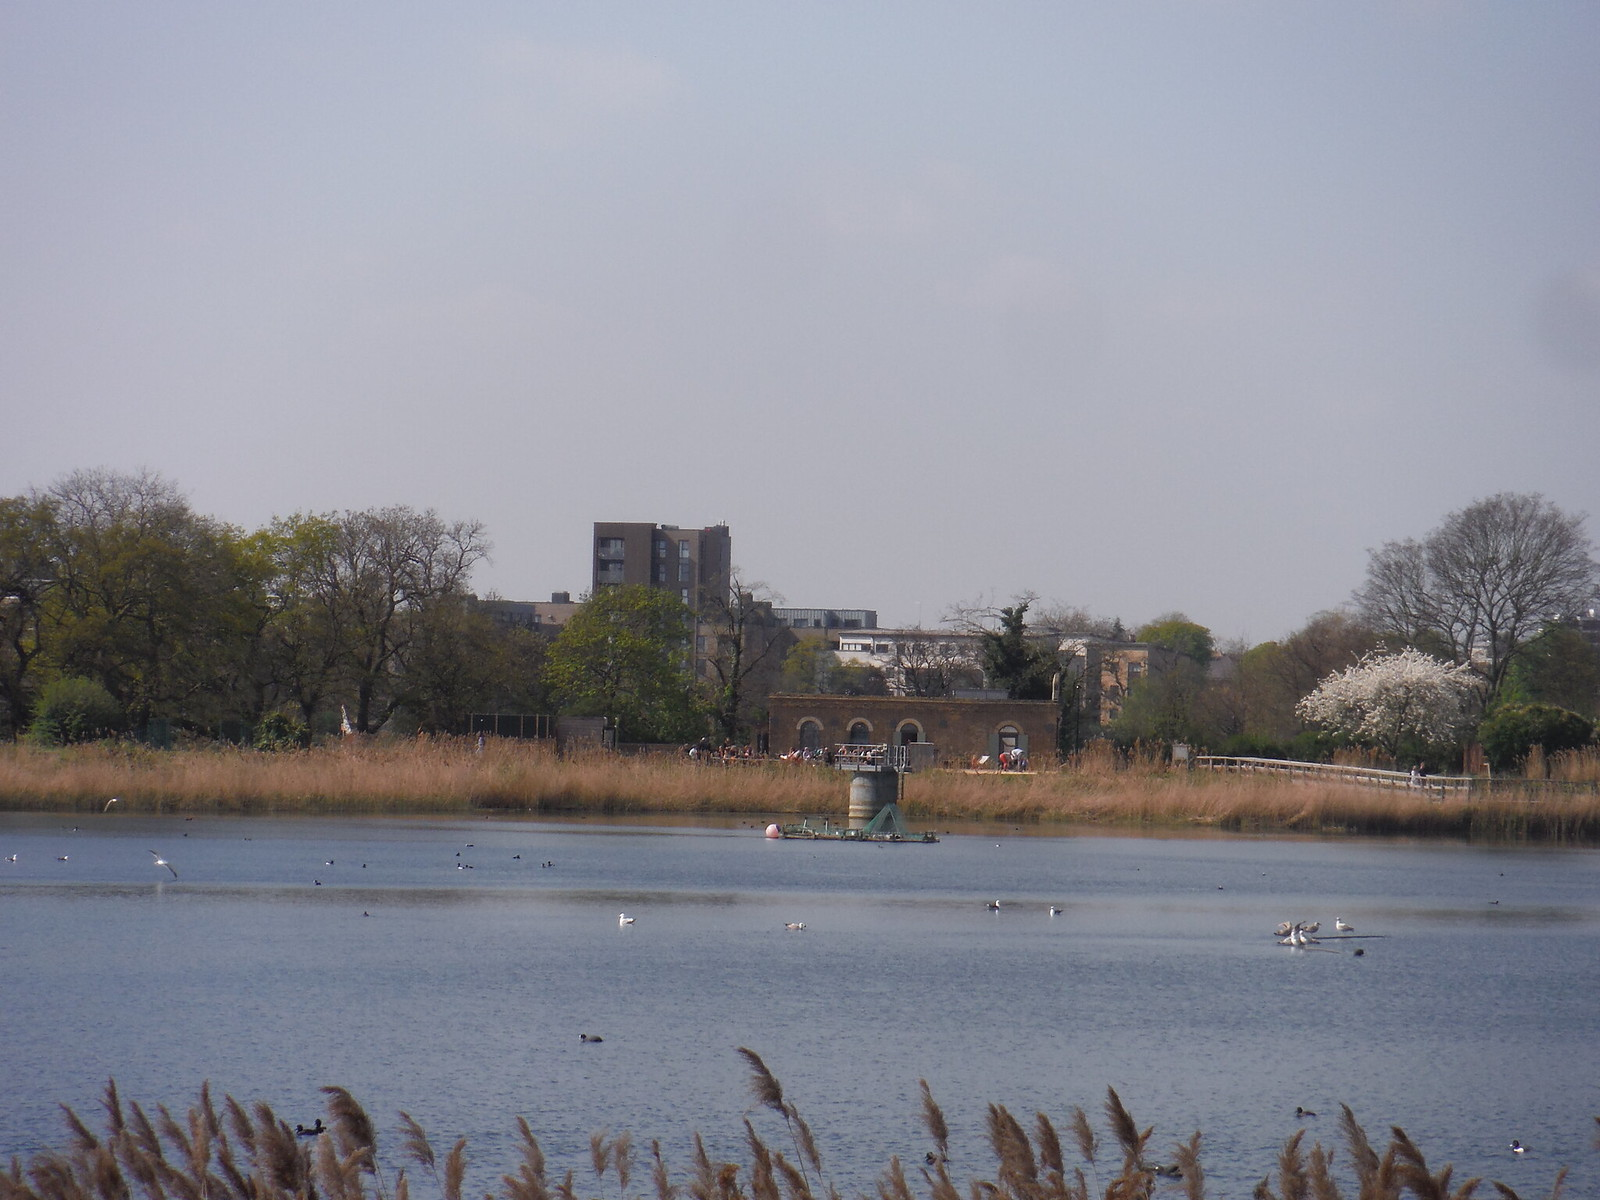 Coal House across the East Reservoir, Woodberry Wetlands SWC Short Walk 26 - Woodberry Wetlands (Stoke Newington Reservoirs)